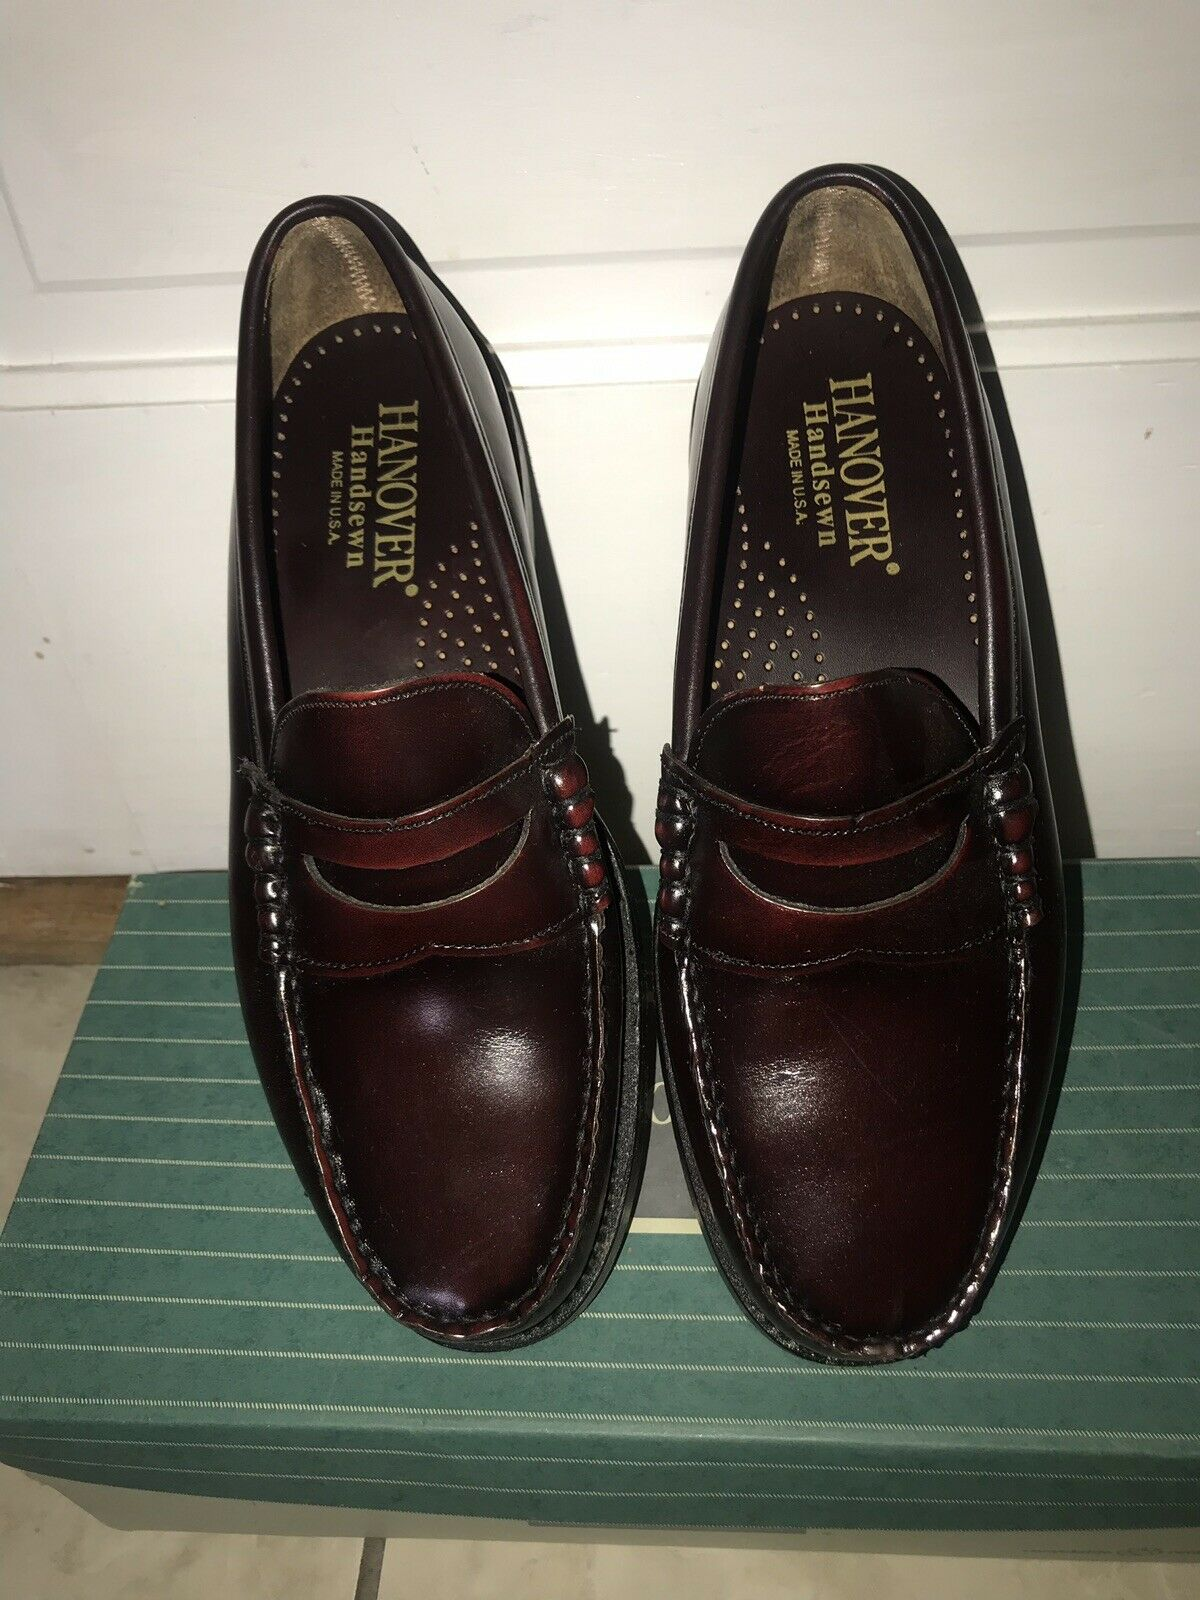 Hanover lisse vache HS Tassel Cuir Hommes Chaussures 8.5 D Made in USA